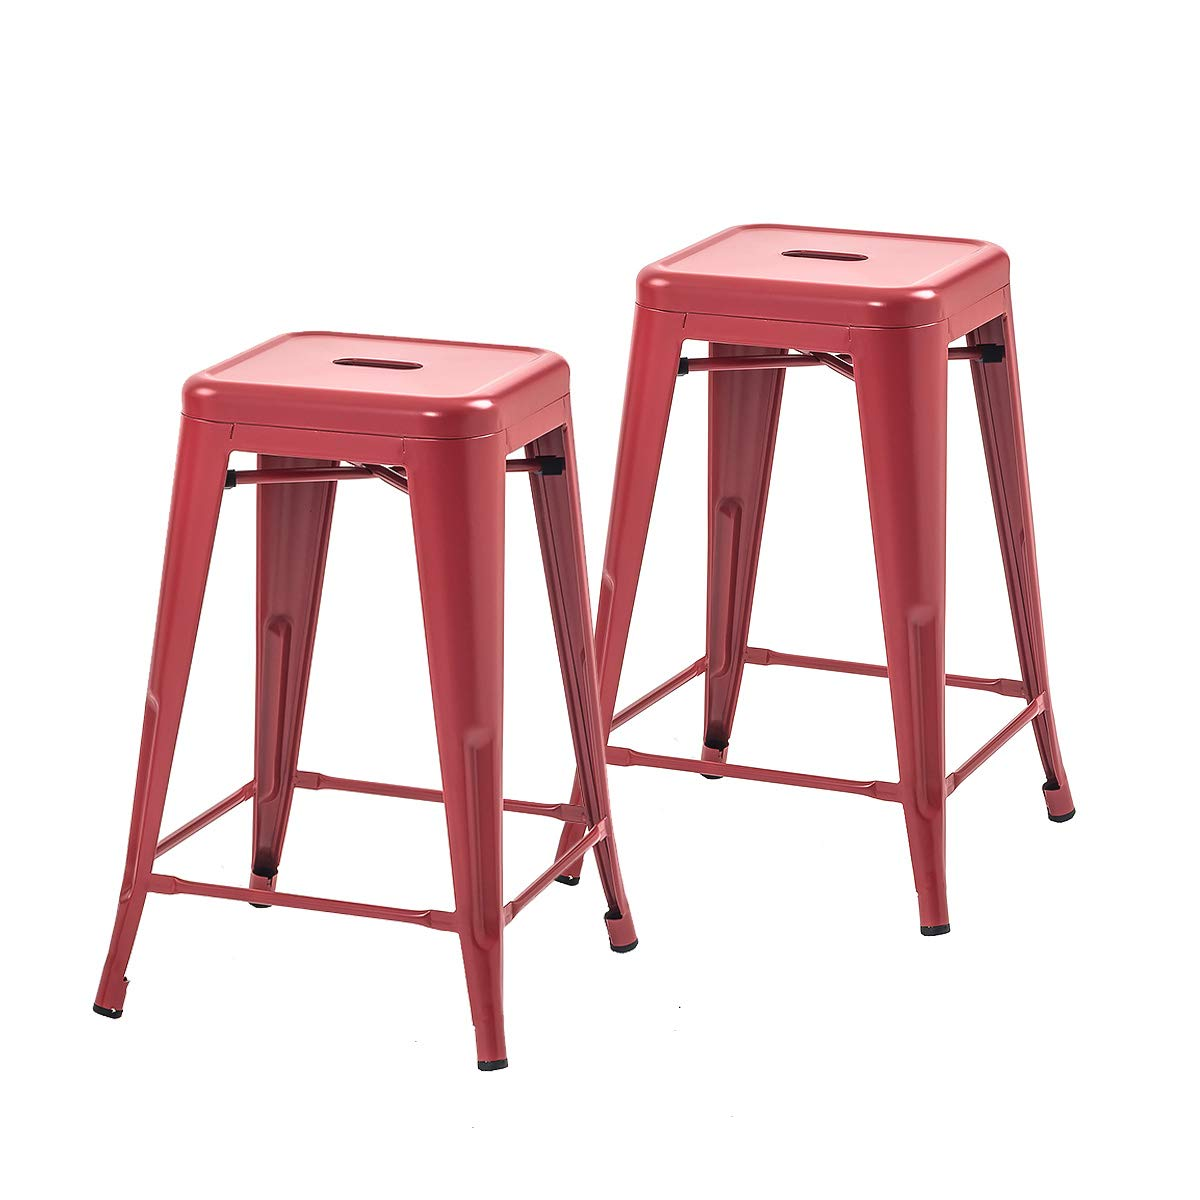 Buschman Set of 2 Red 24 Inch Counter Height Metal Bar Stools, Indoor Outdoor, Stackable